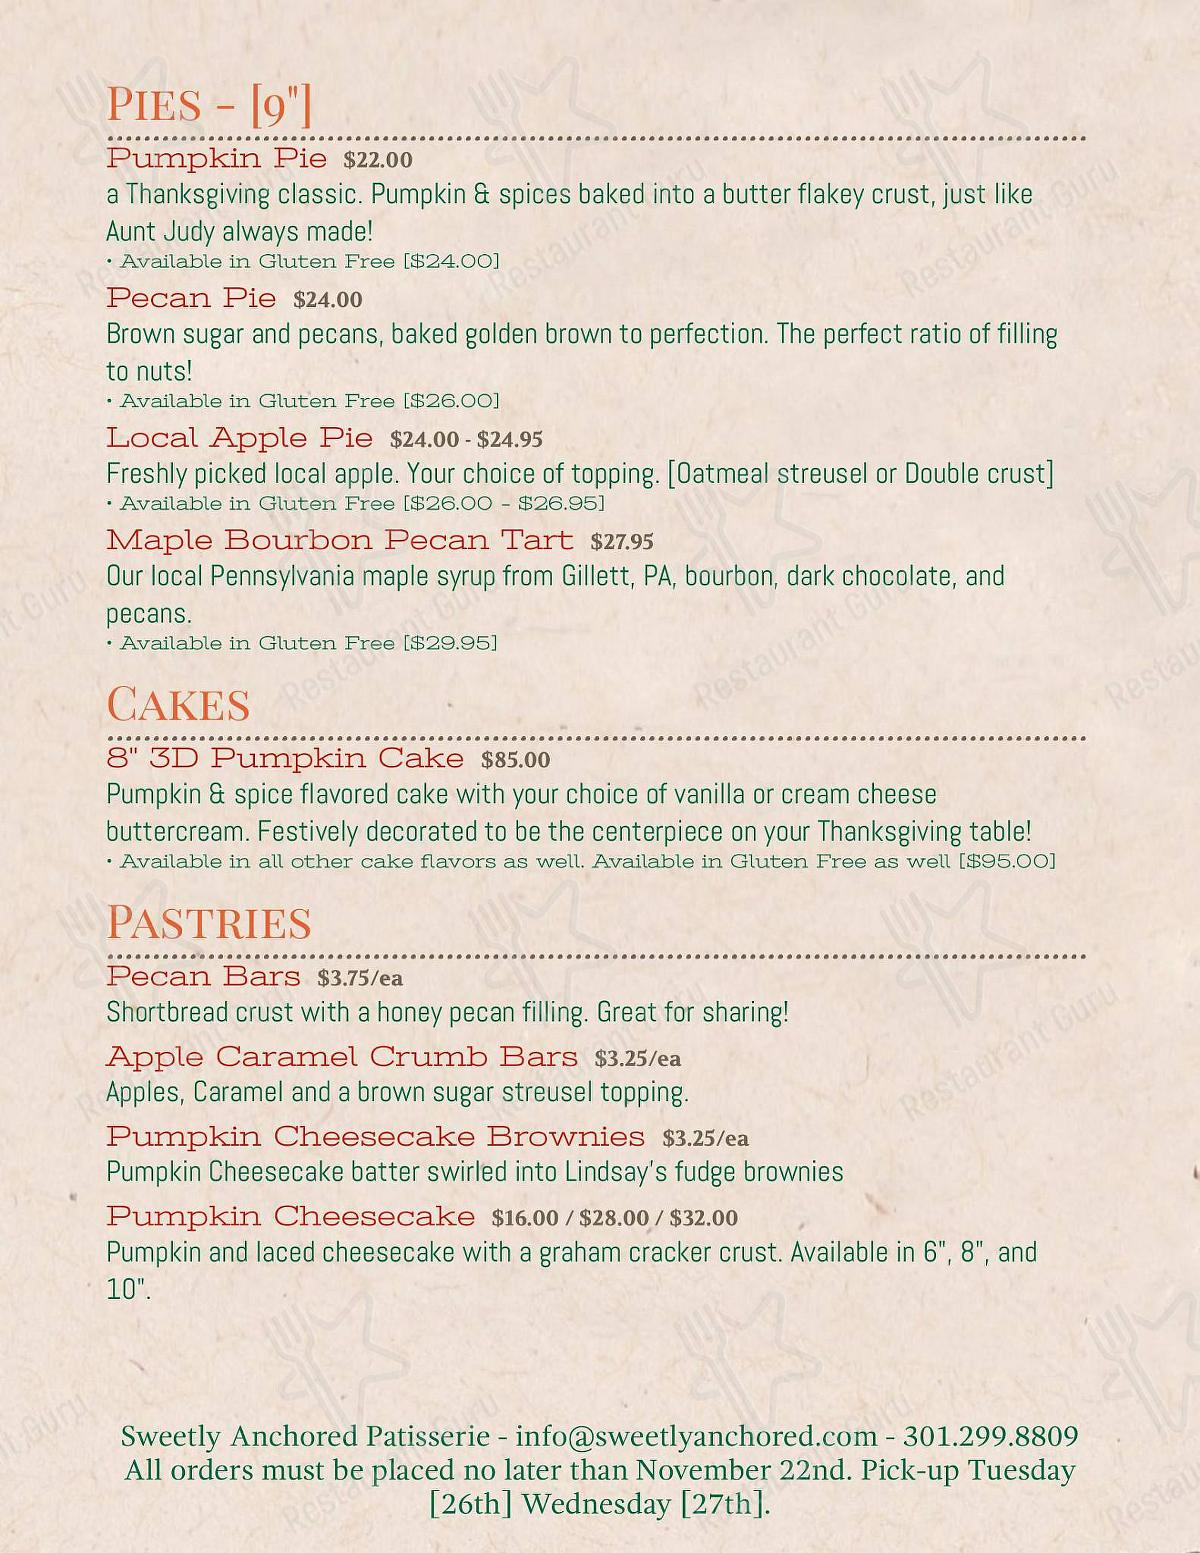 Menu for the Sweetly Anchored Patisserie desserts